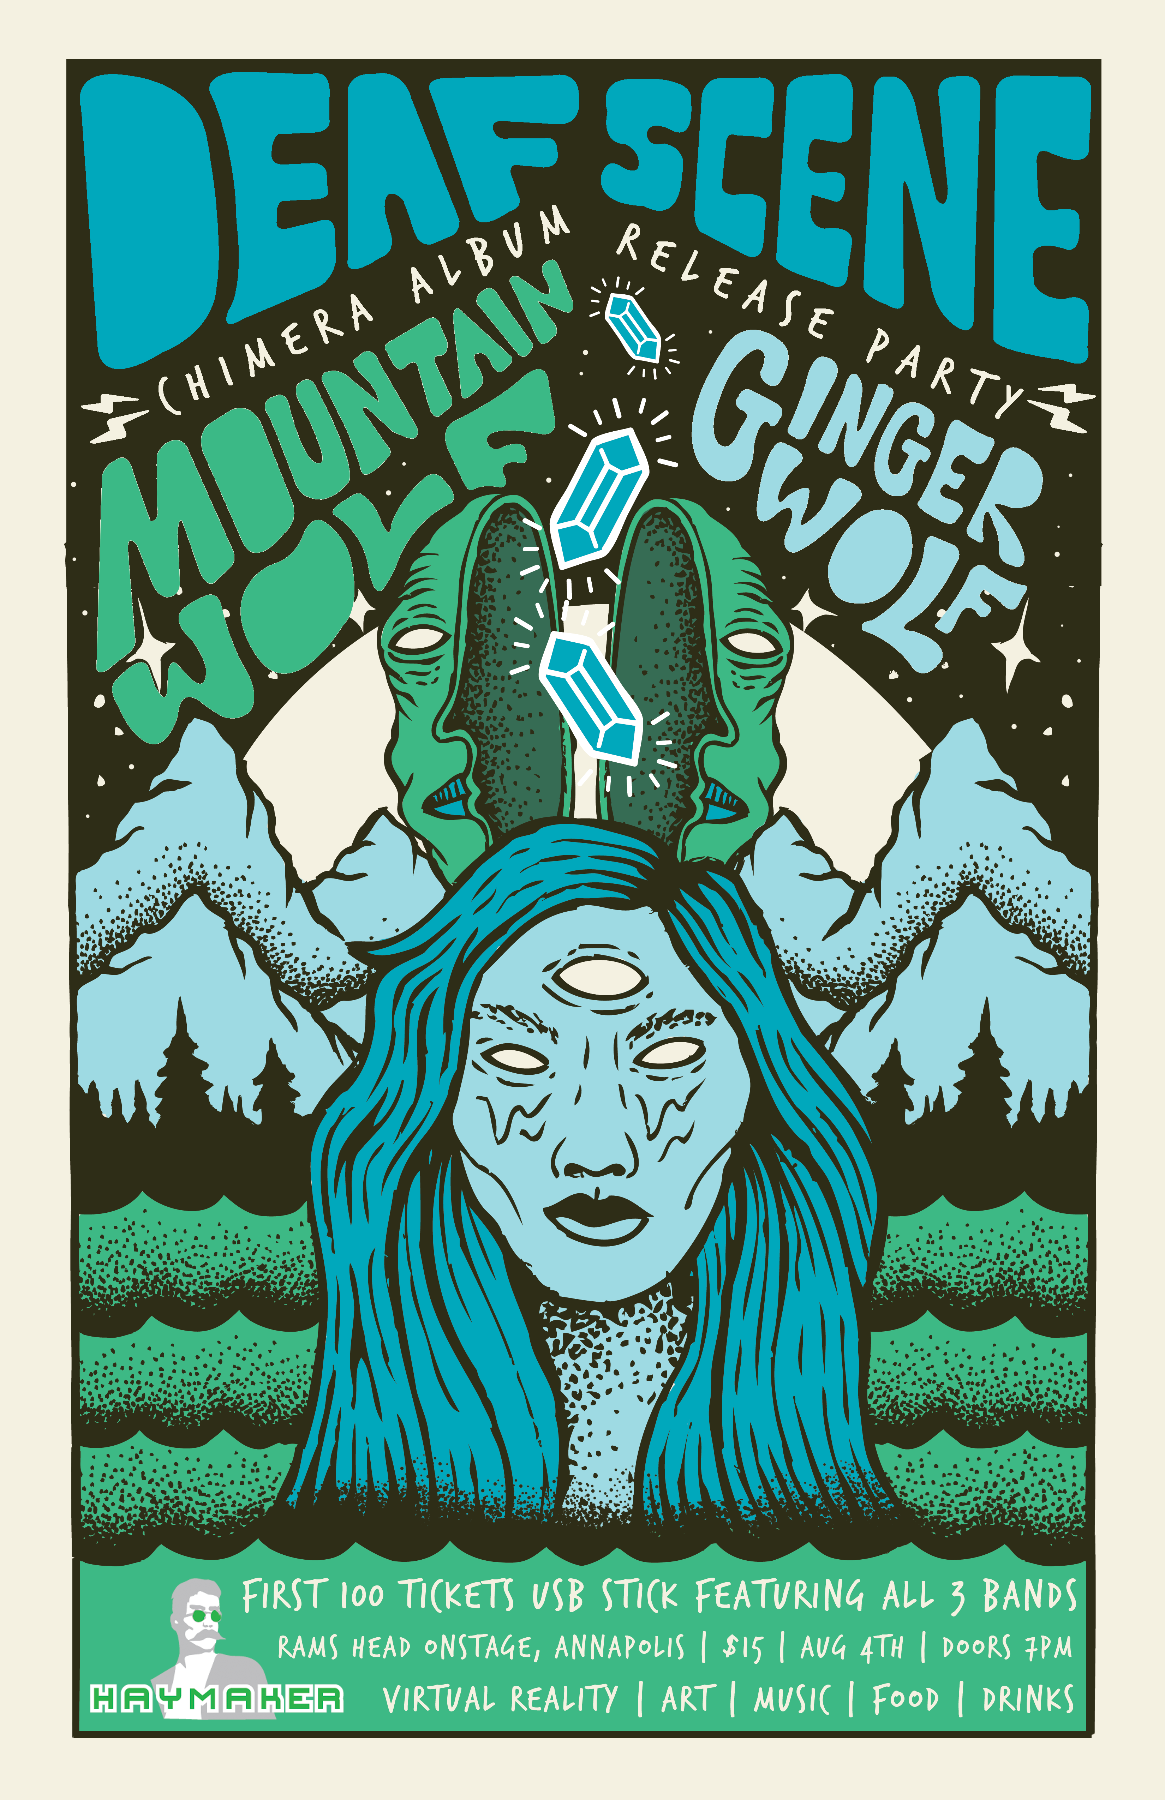 Deaf Scene's Album Release Party w/ Mountainwolf & Gingerwolf